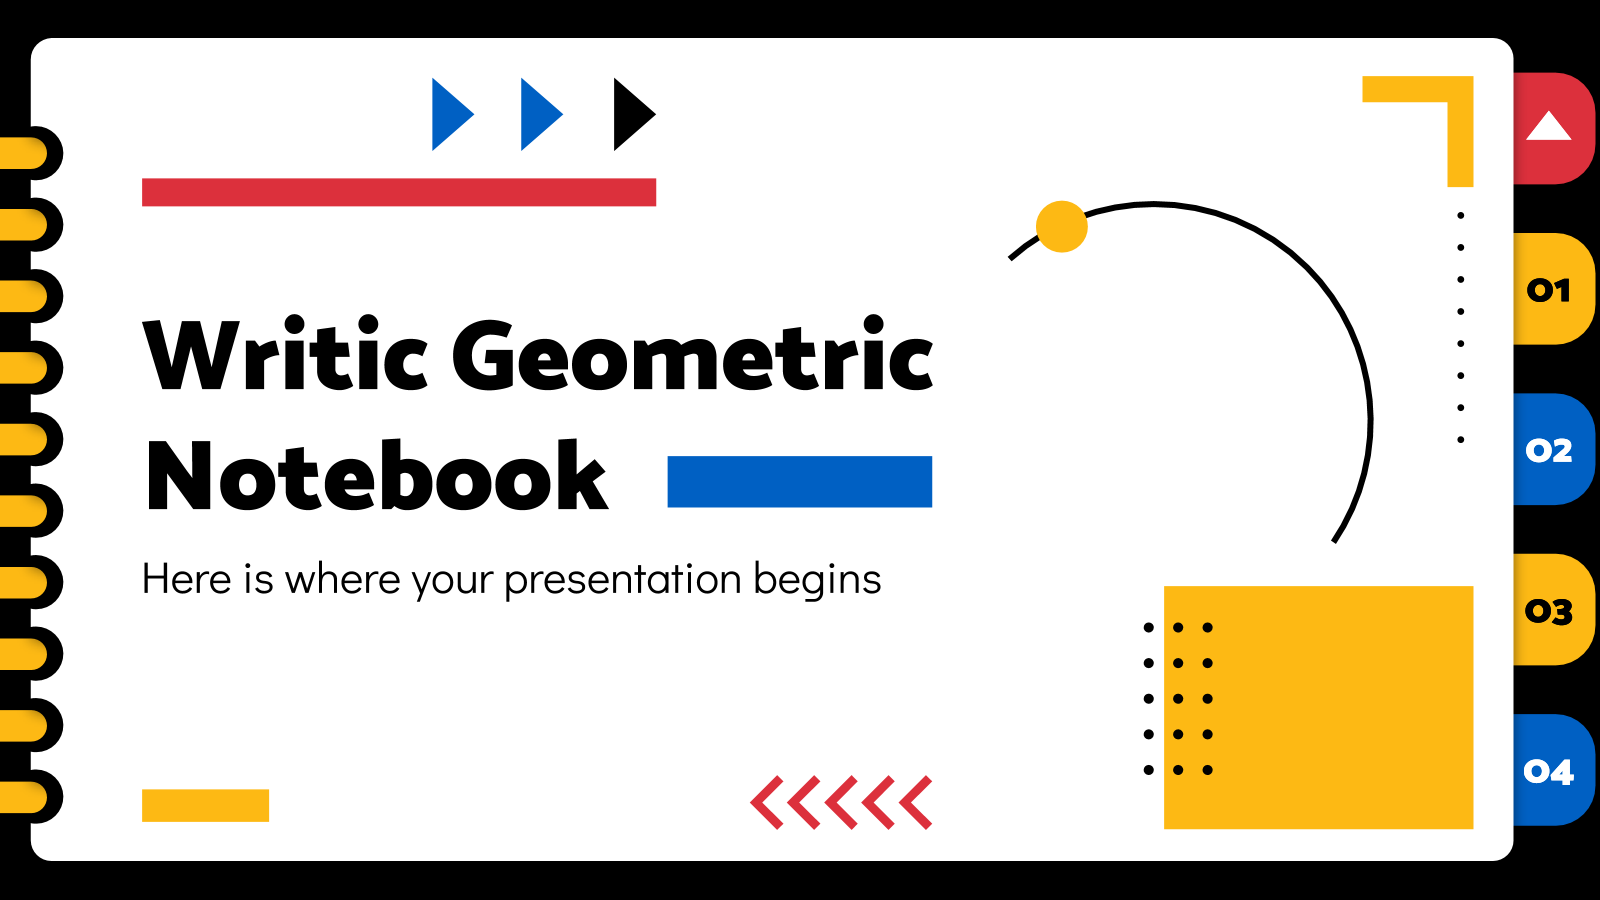 Writic Geometric Notebook presentation template